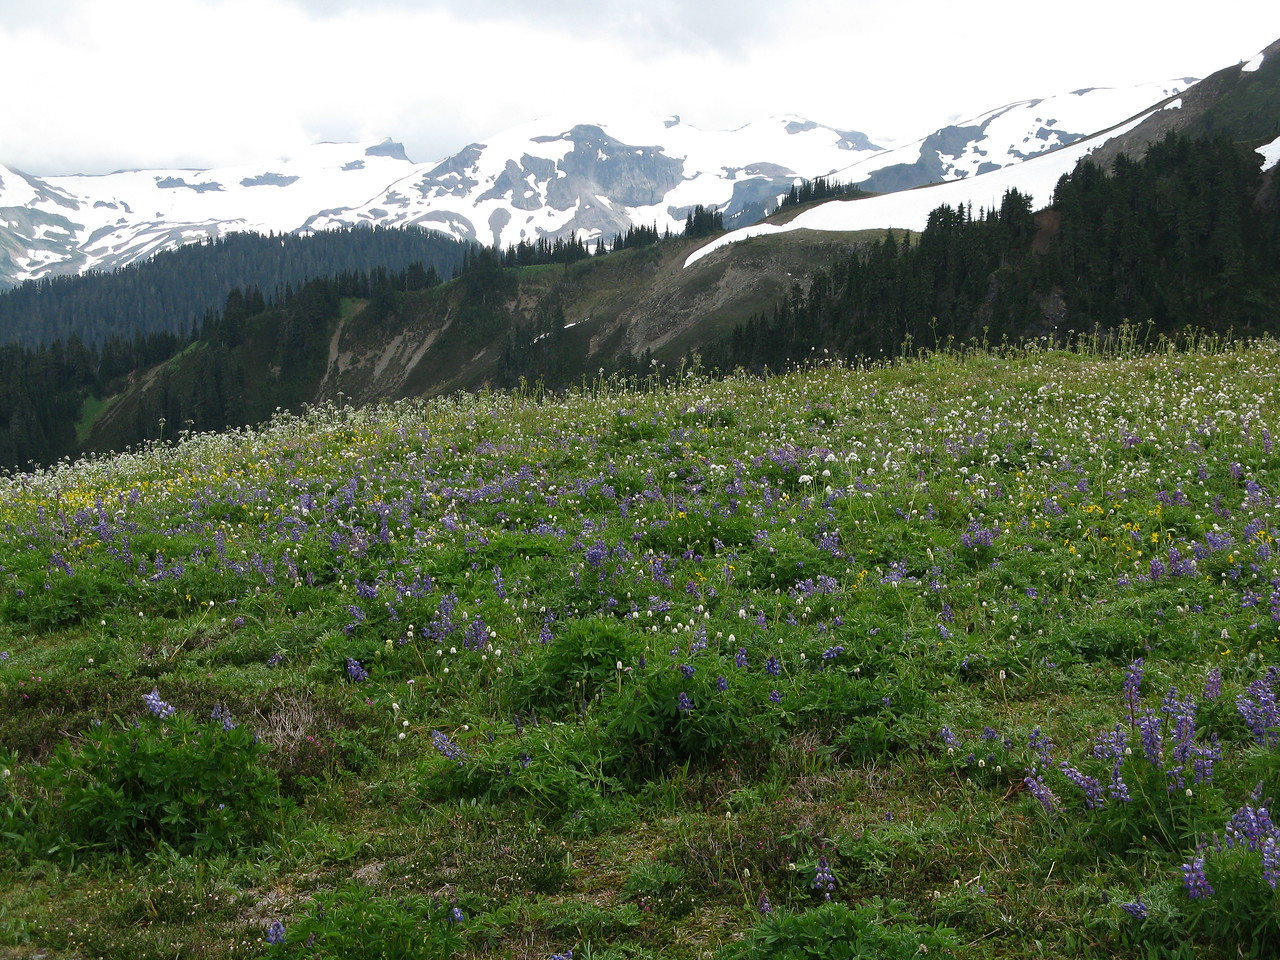 Snow covered mountains and wildflowers in the foreground.